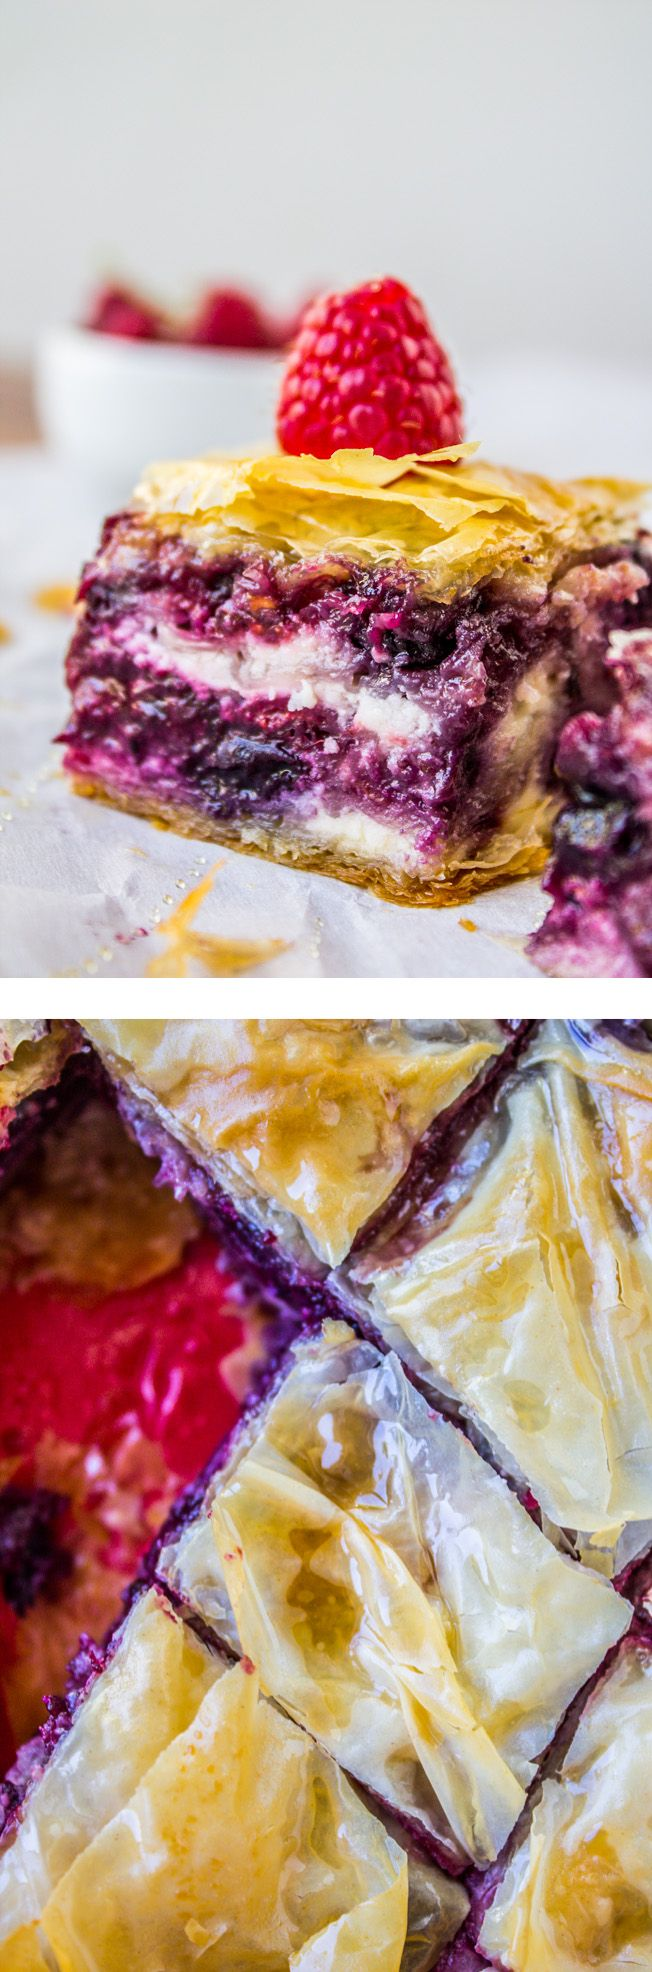 Berry Cheesecake Baklava from The Food Charlatan // A fun spin on the traditional version–the perfect make-ahead summer dessert! Plus: no nuts